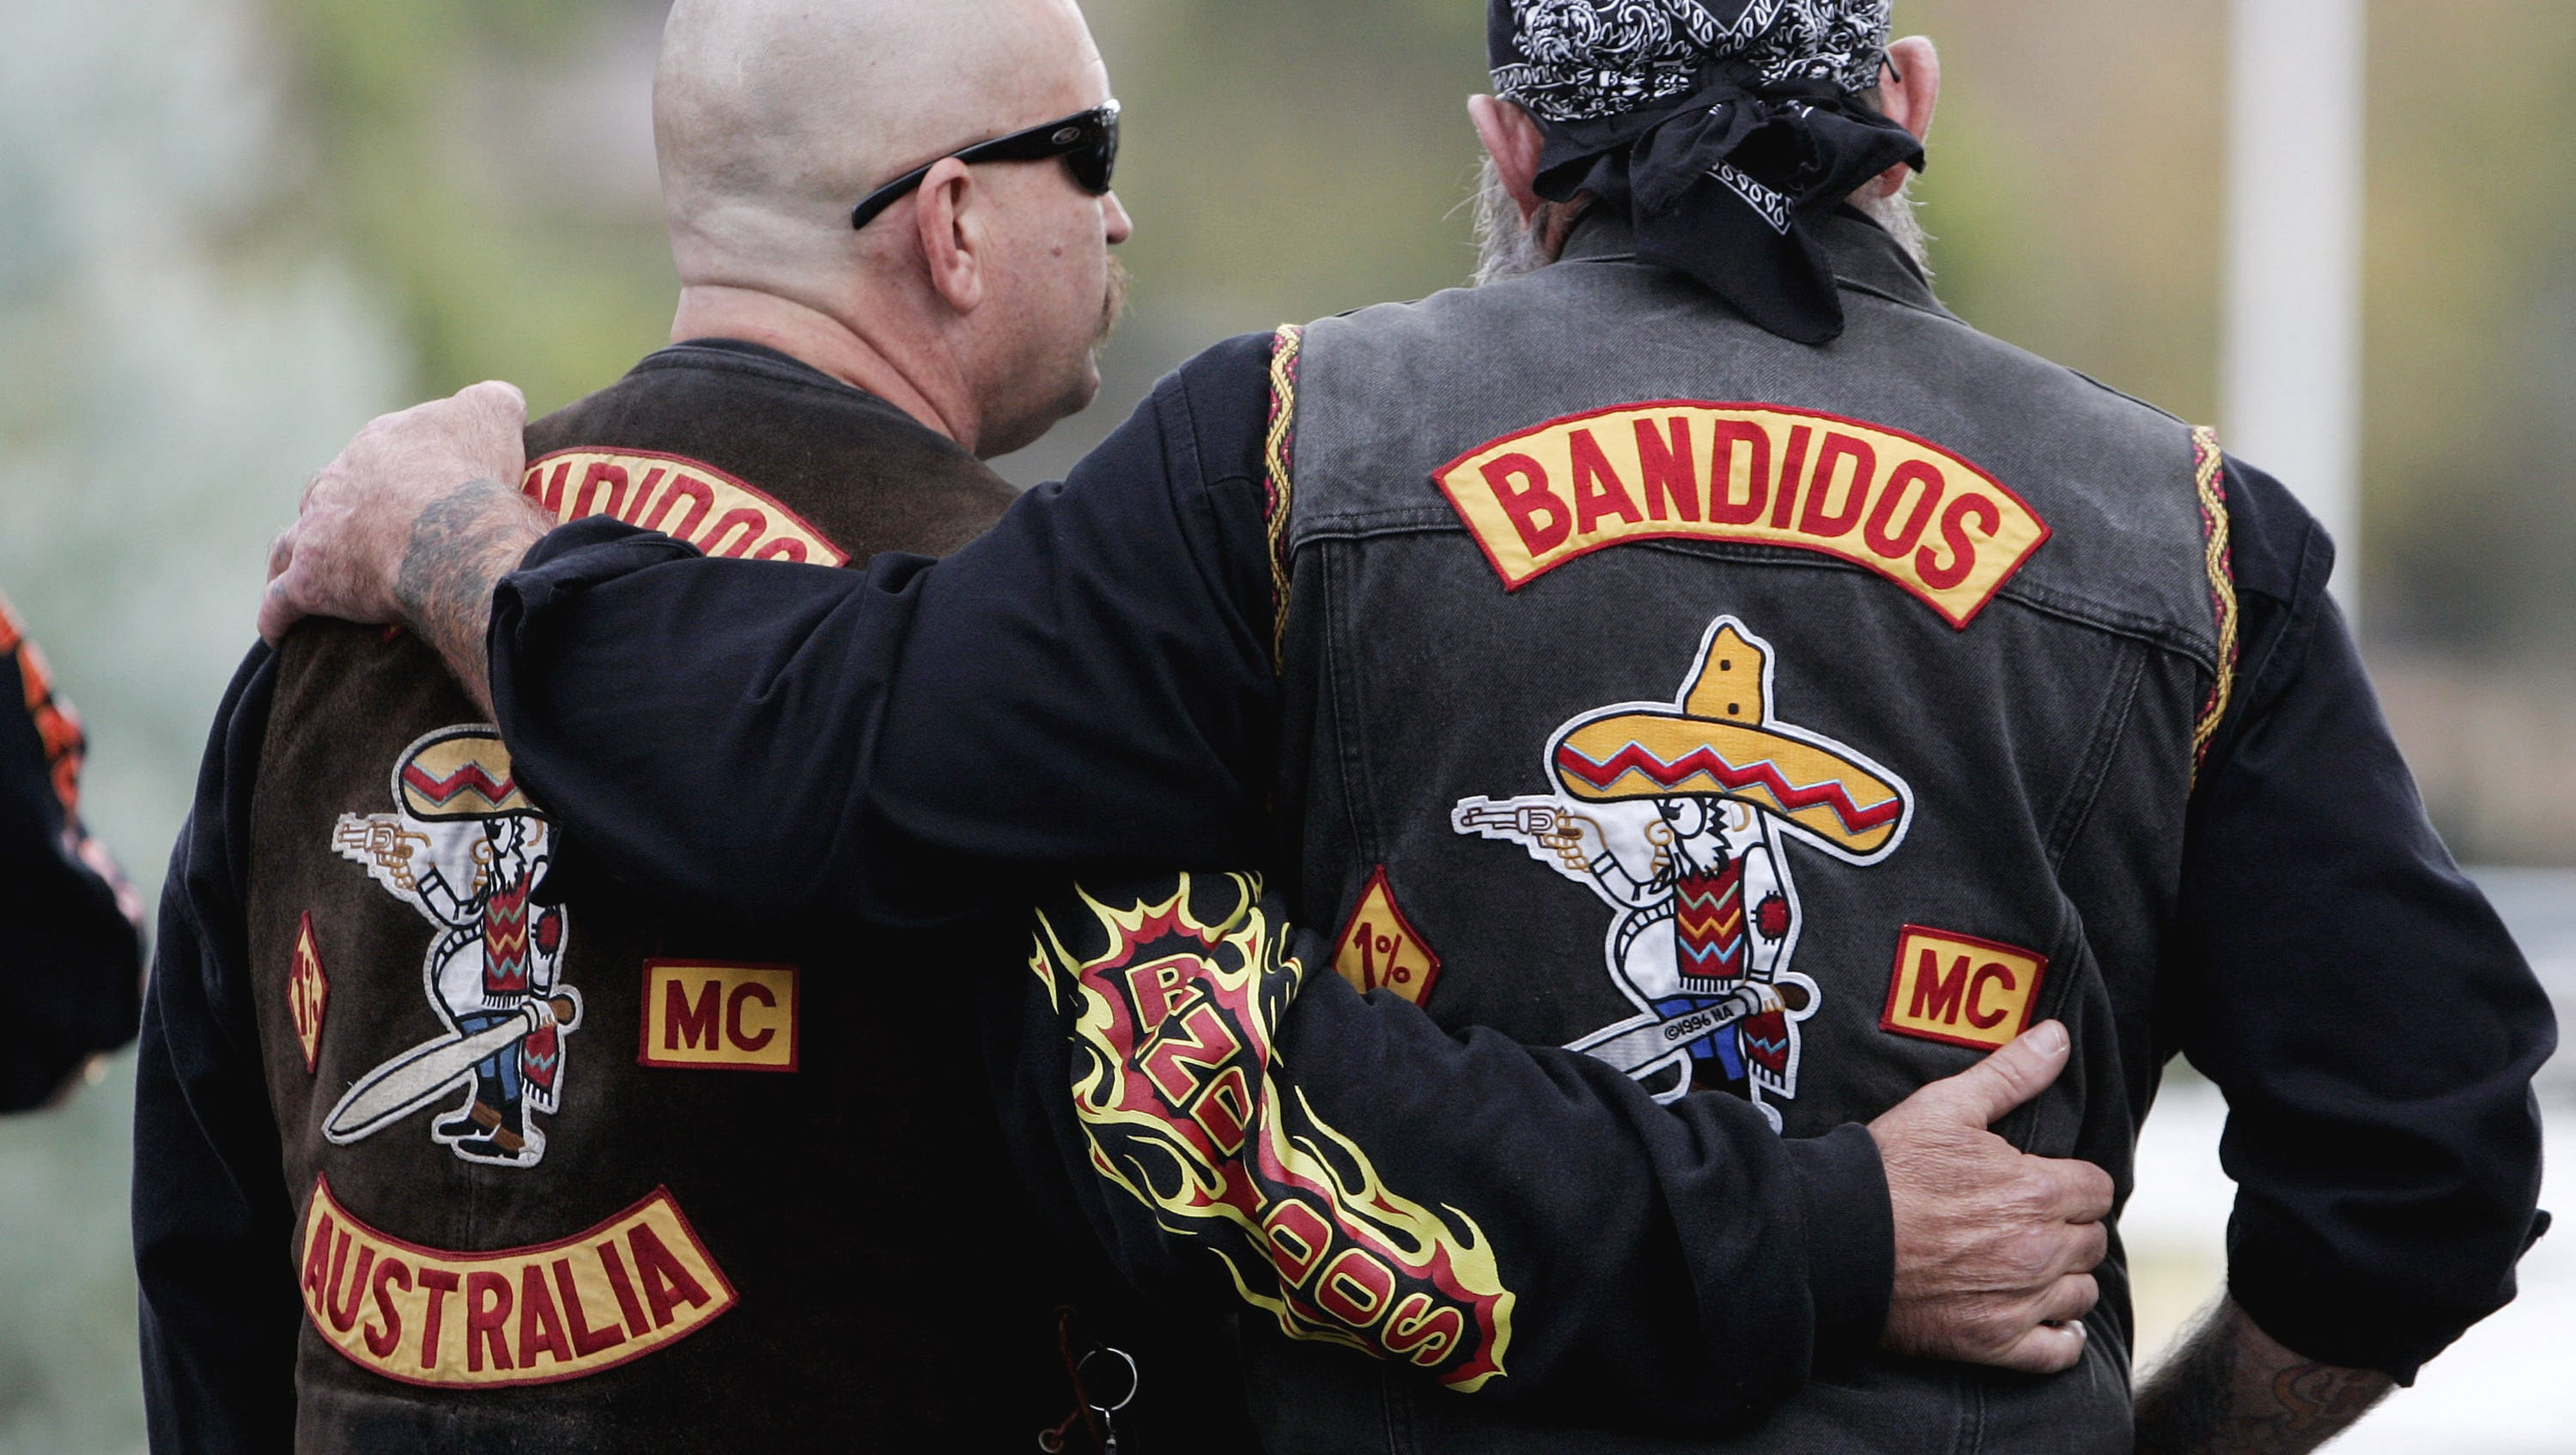 Bandidos 5 Things To Know About Second Most Dangerous Motorcycle Gang